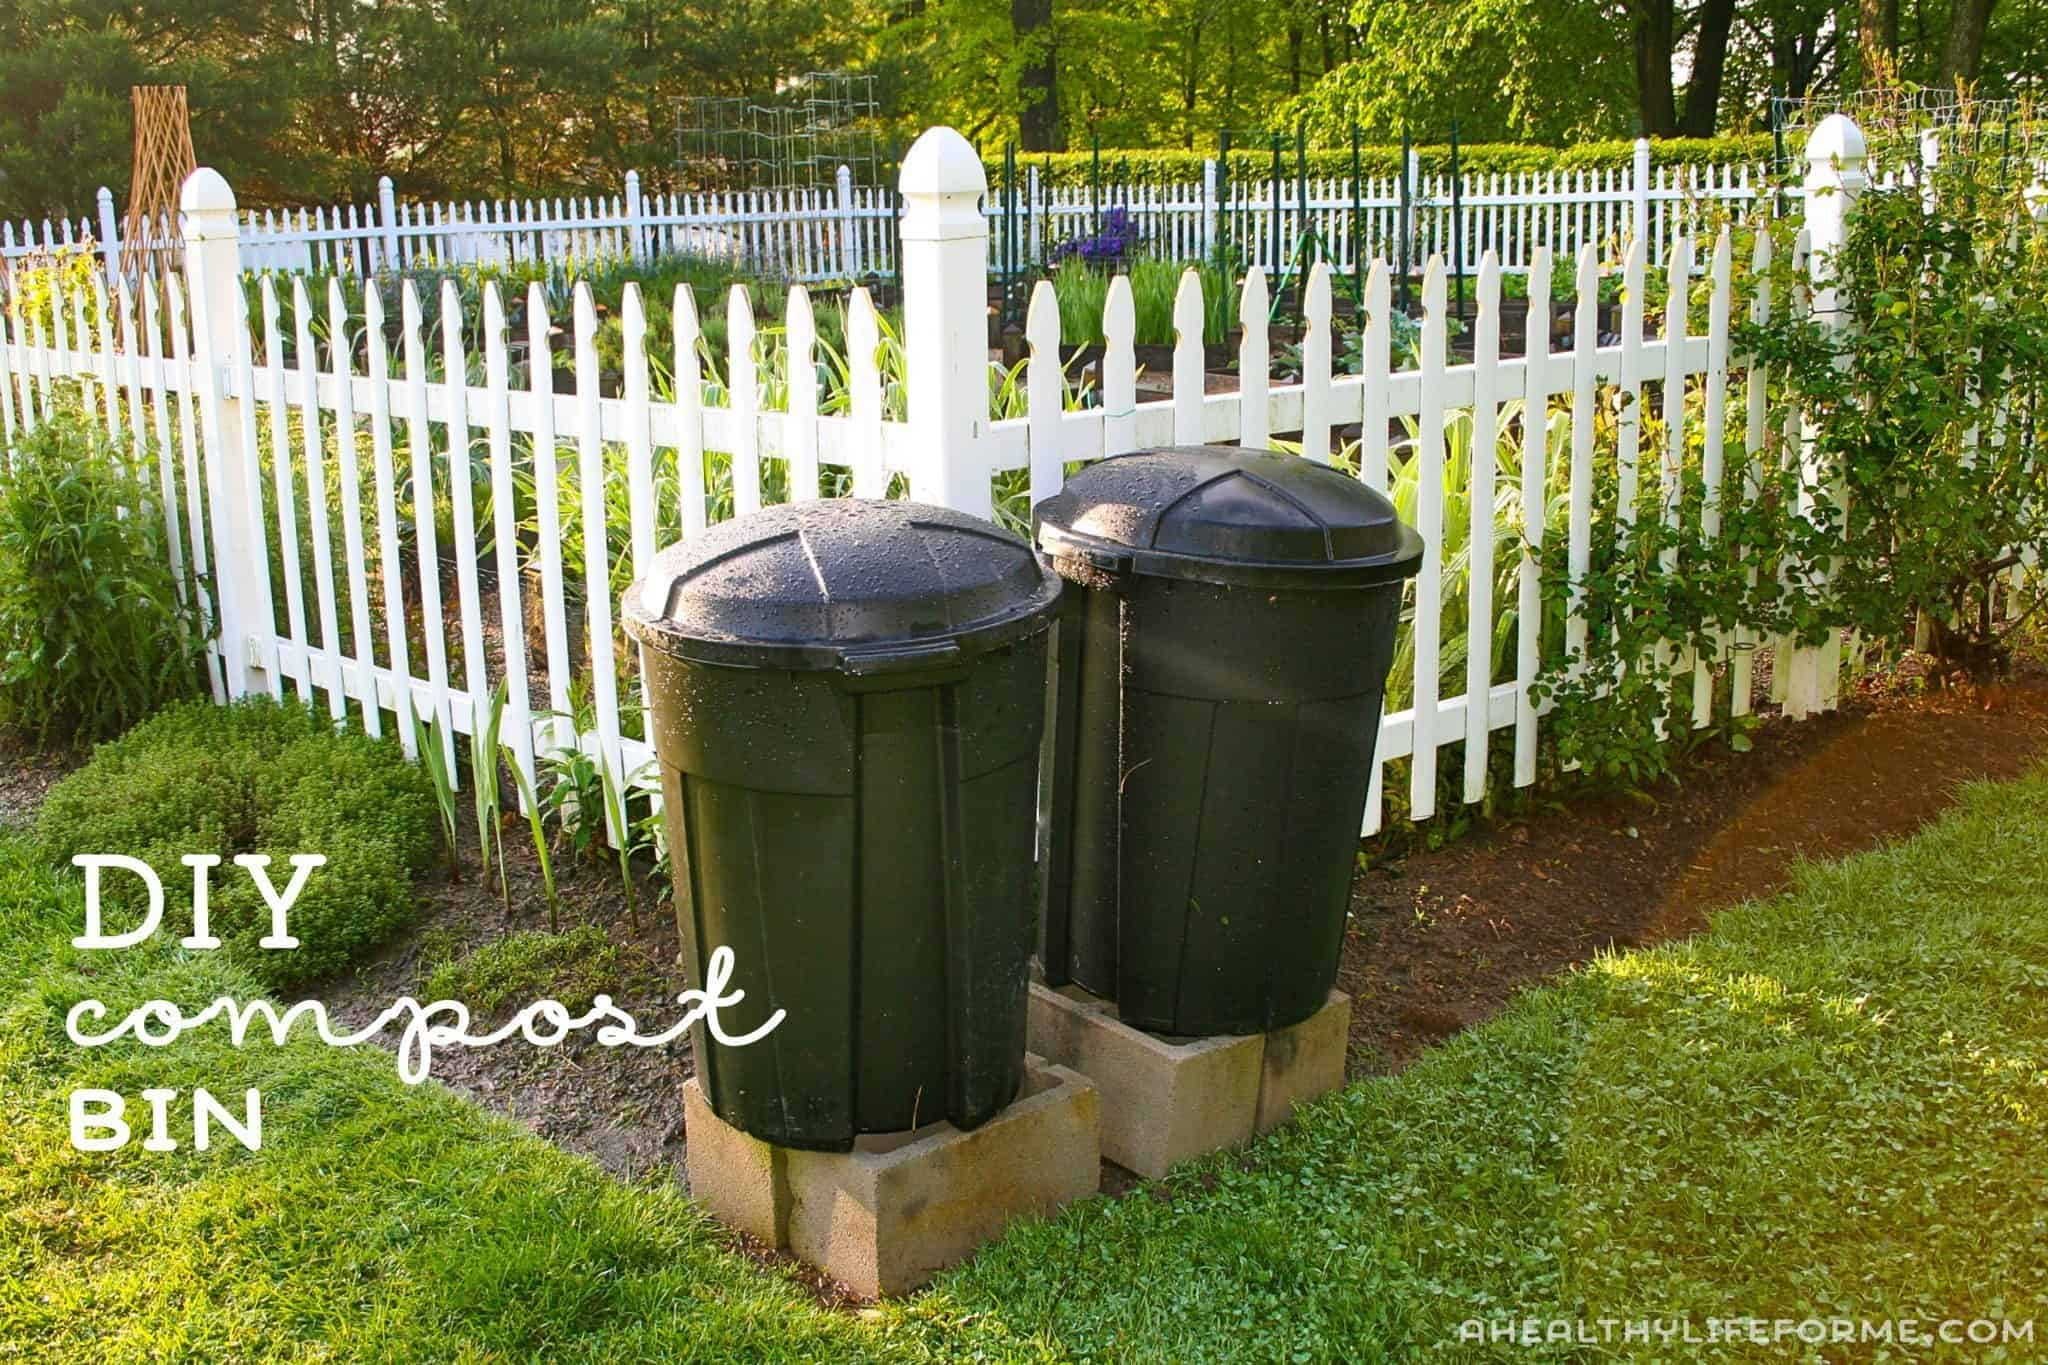 Diy compost bin from a larger classic trash can